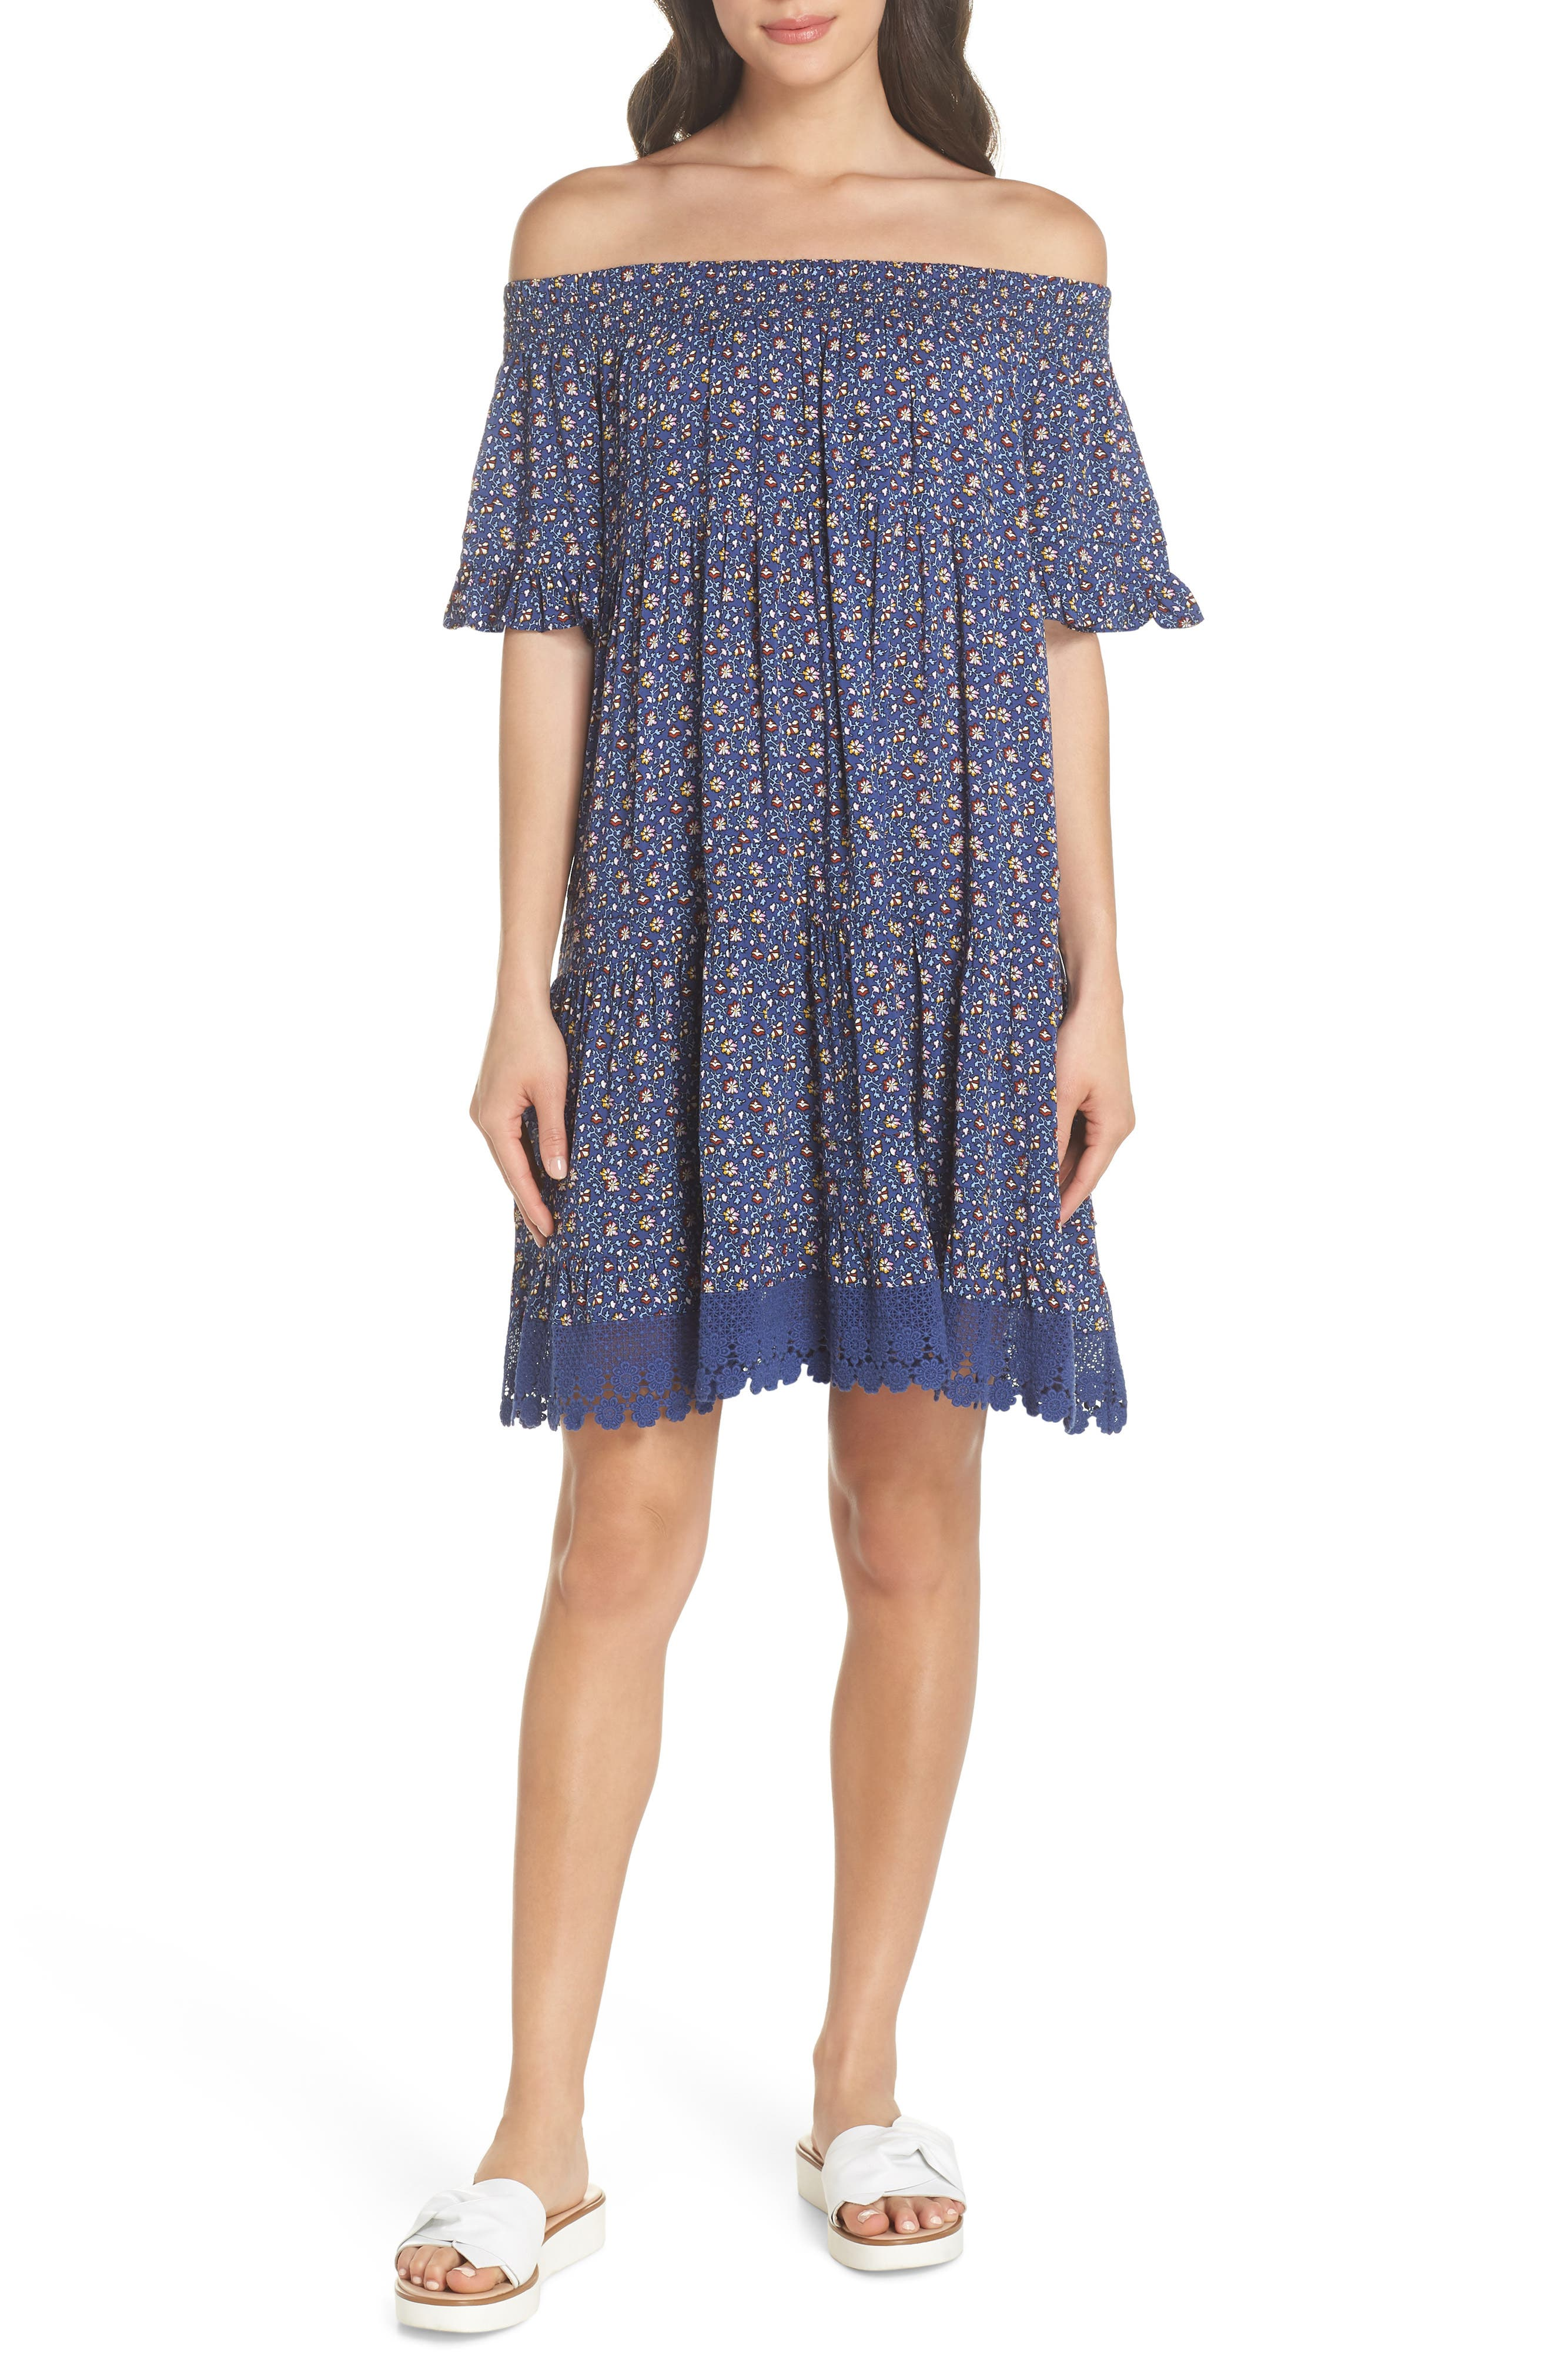 Wild Pansy Off the Shoulder Cover-Up Dress,                         Main,                         color, Navy Wild Pansy